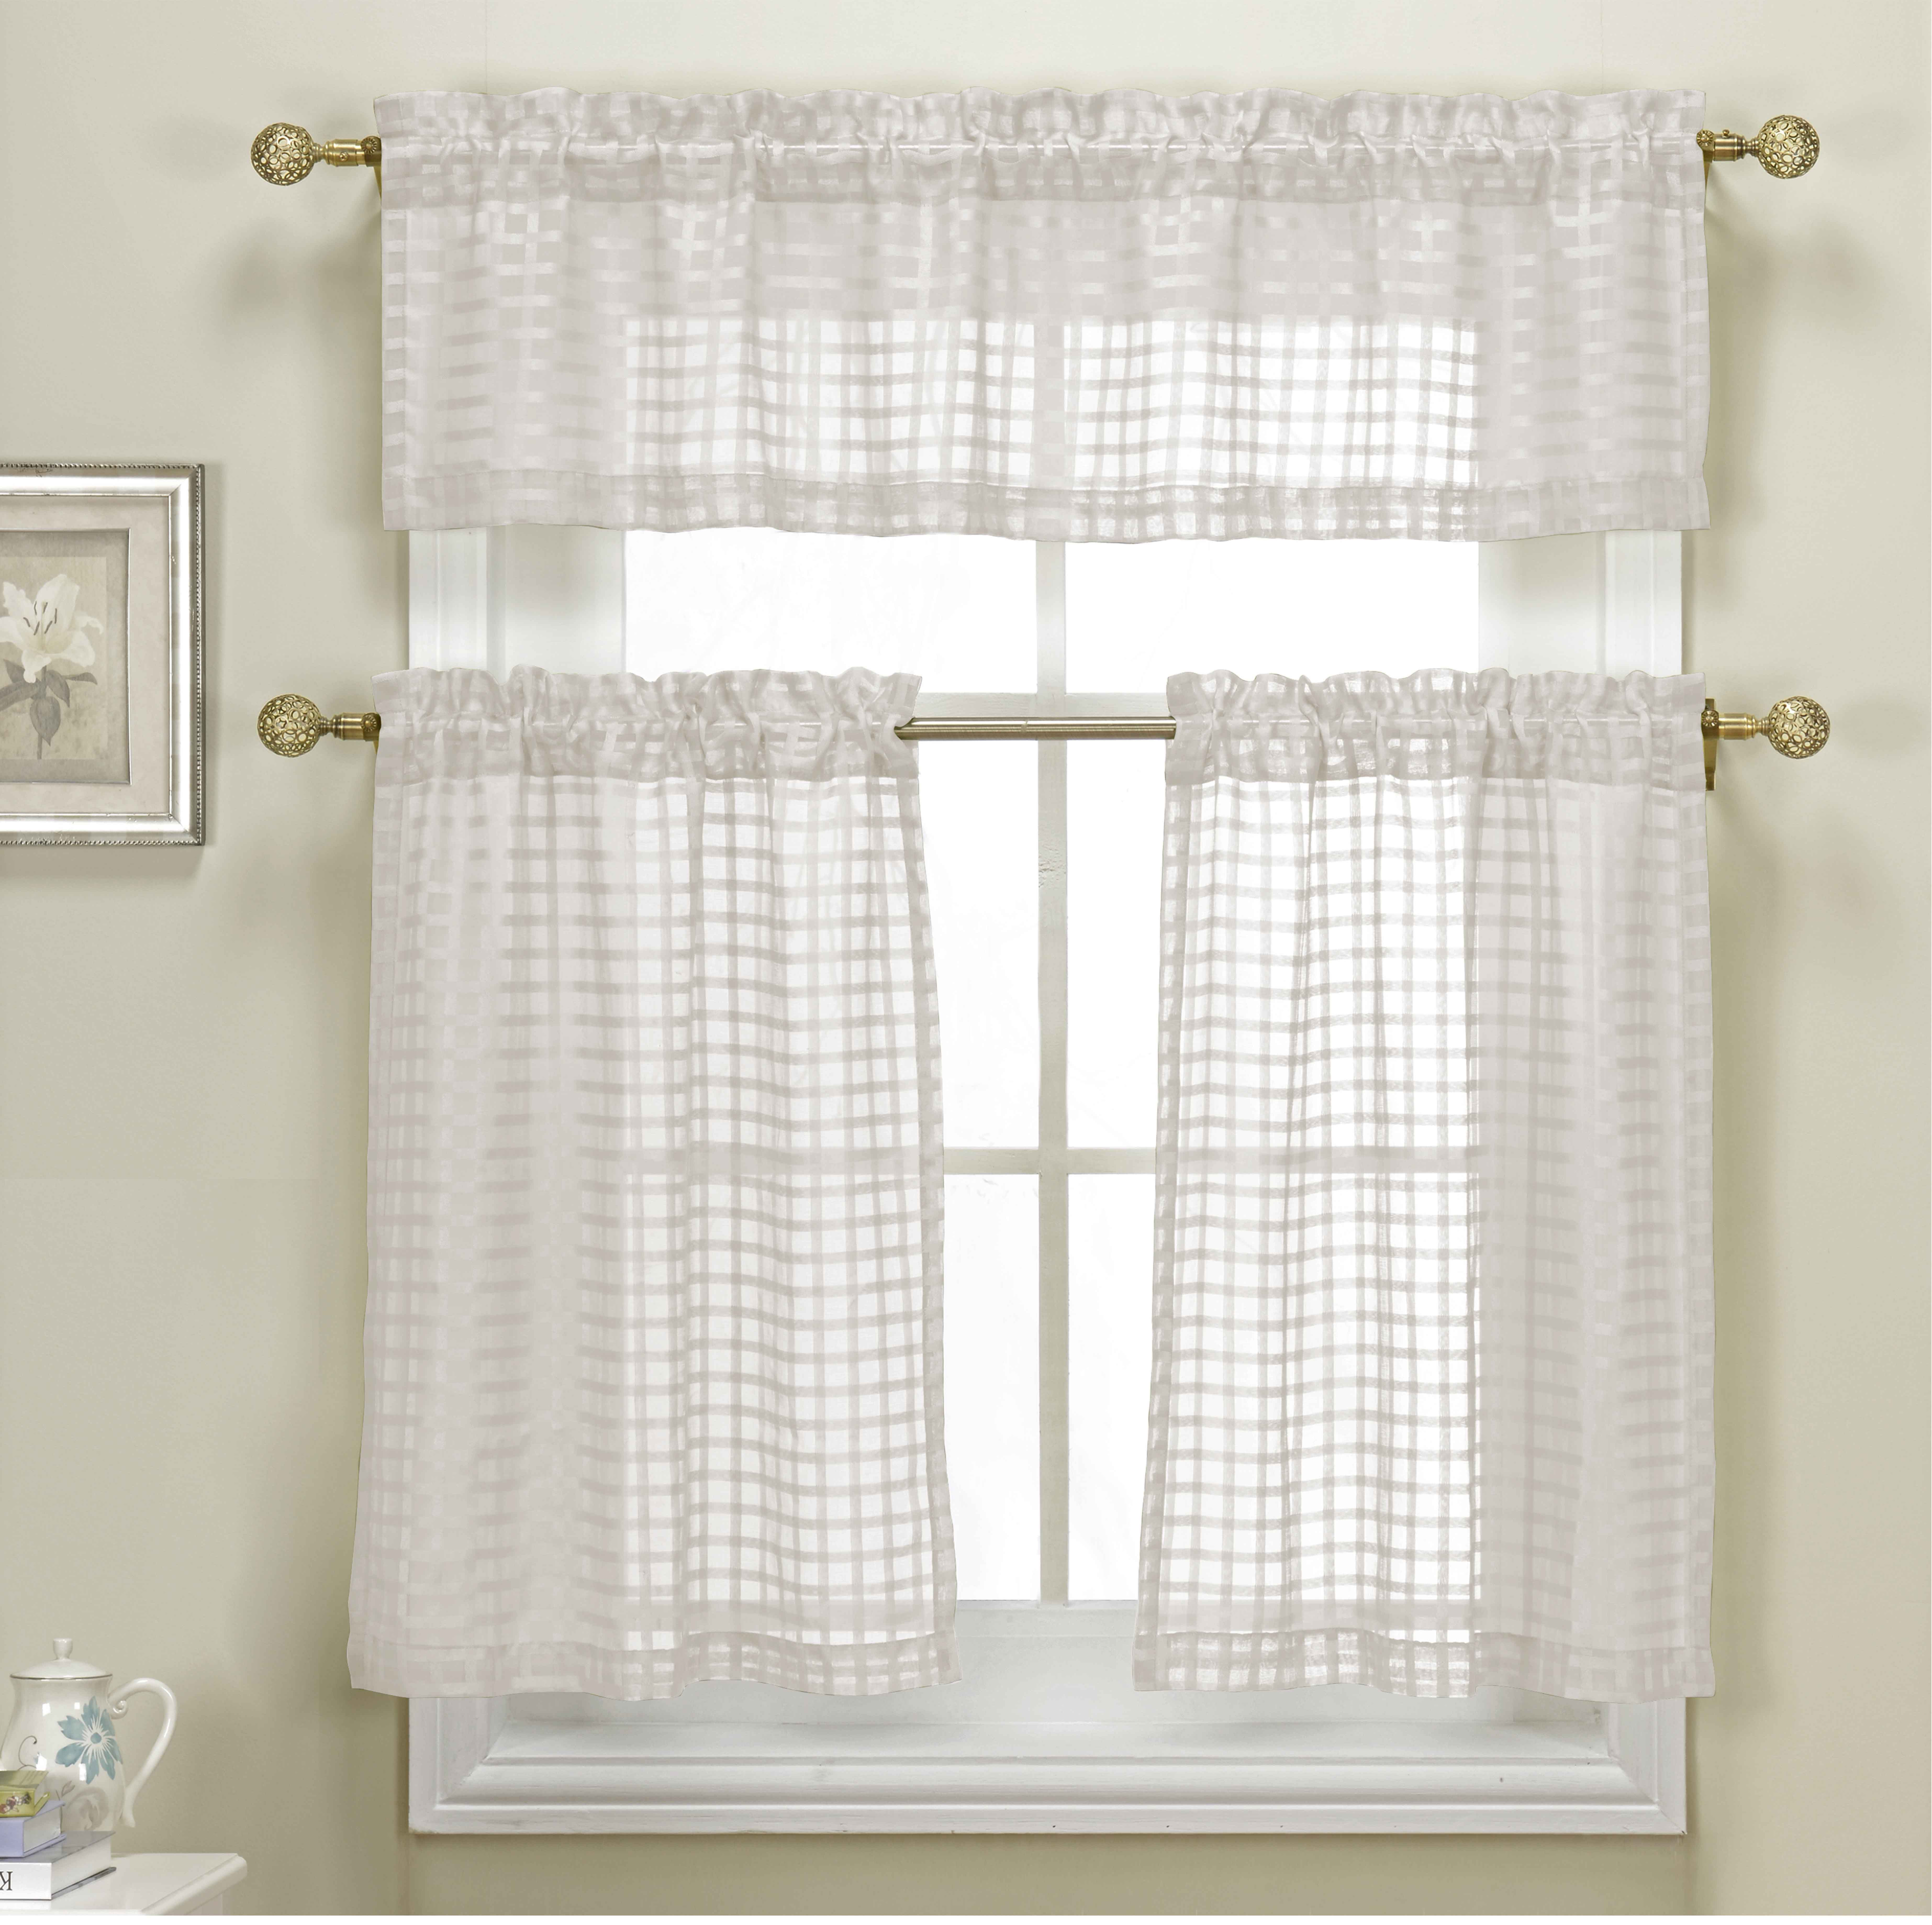 3 Piece White Sheer Kitchen Curtain Set Woven Check Design 1